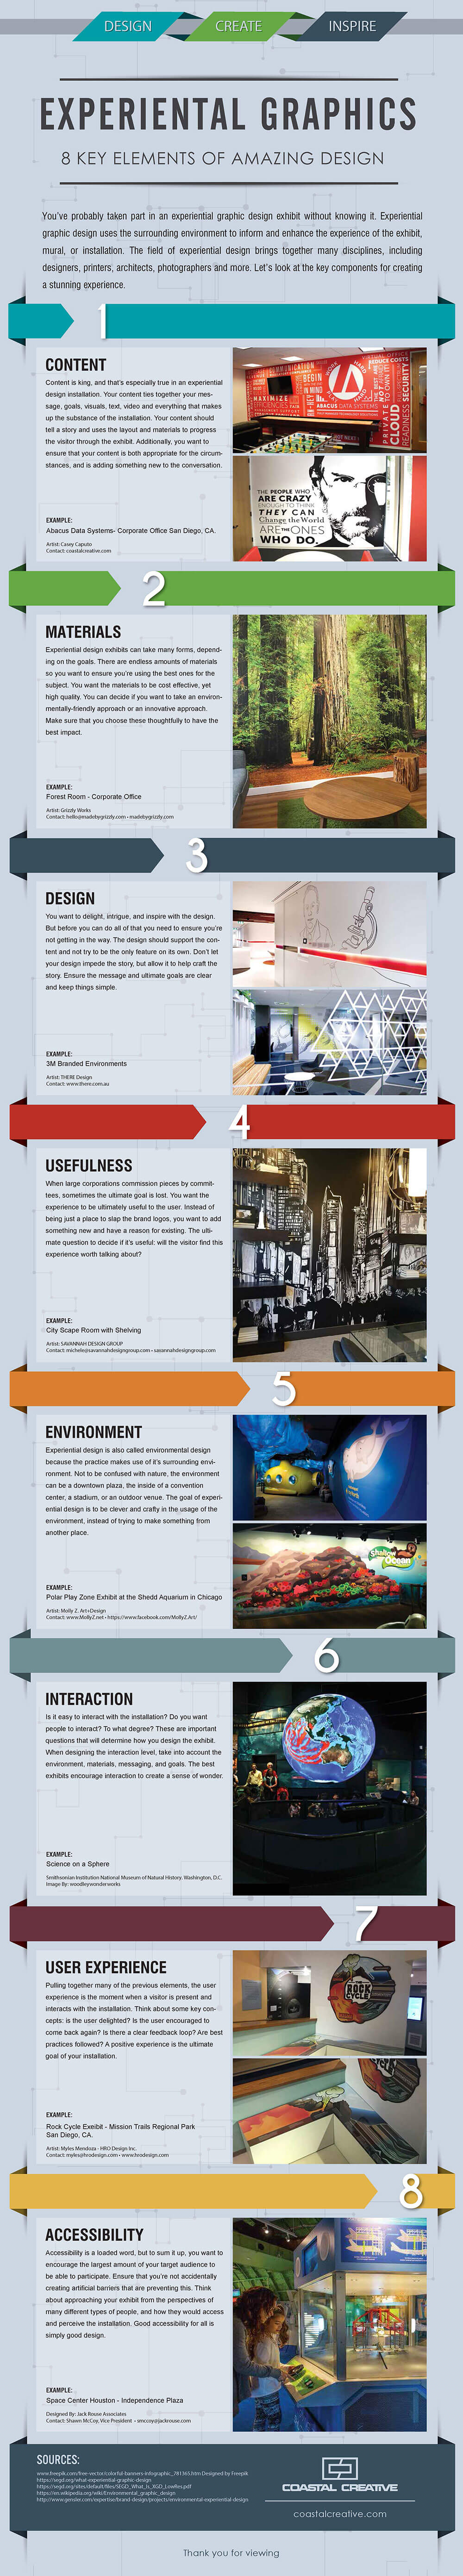 Experiential-Graphics-Infographic-plaza